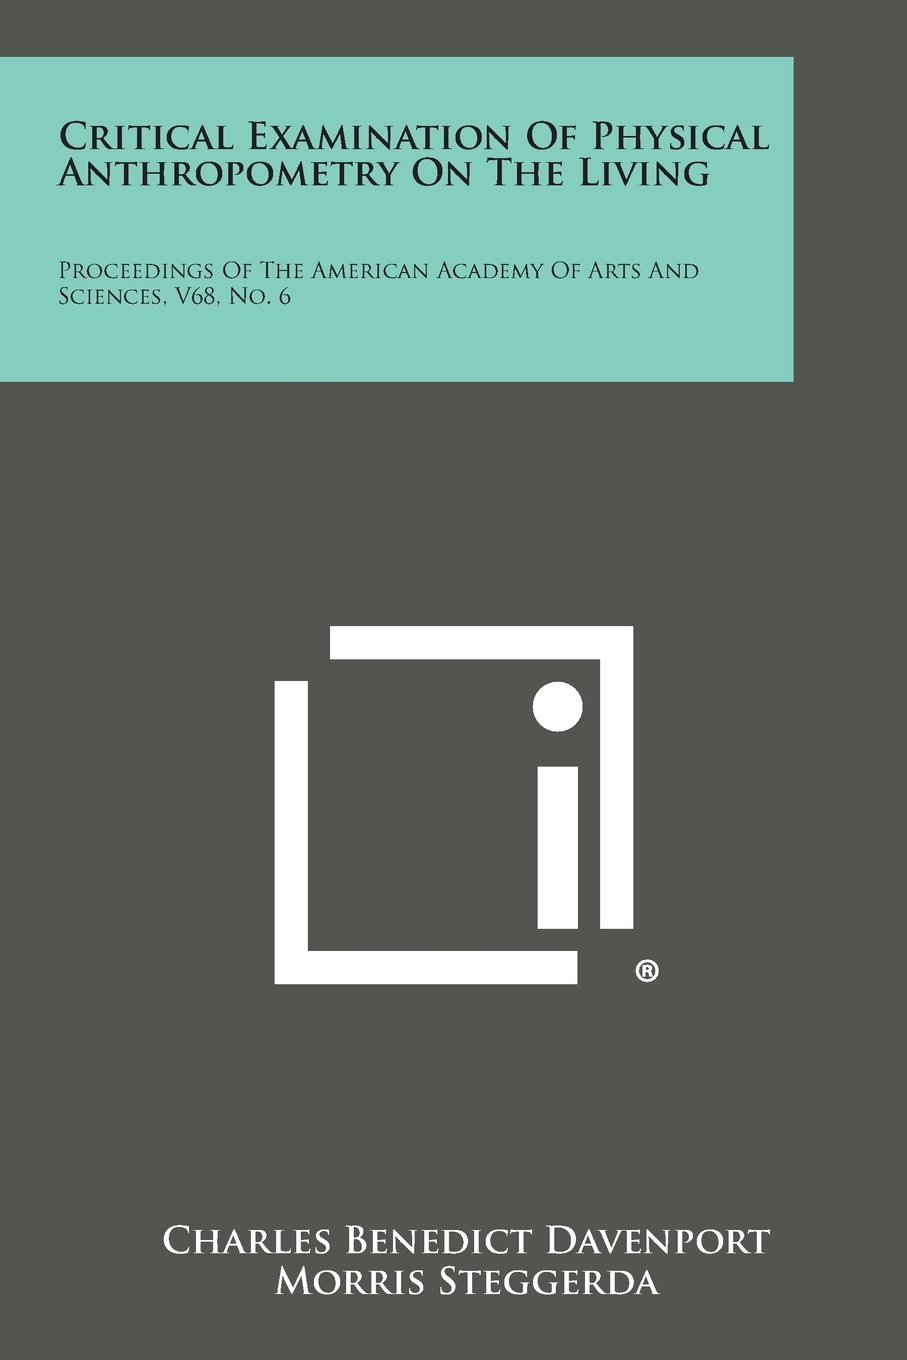 Read Online Critical Examination of Physical Anthropometry on the Living: Proceedings of the American Academy of Arts and Sciences, V68, No. 6 PDF